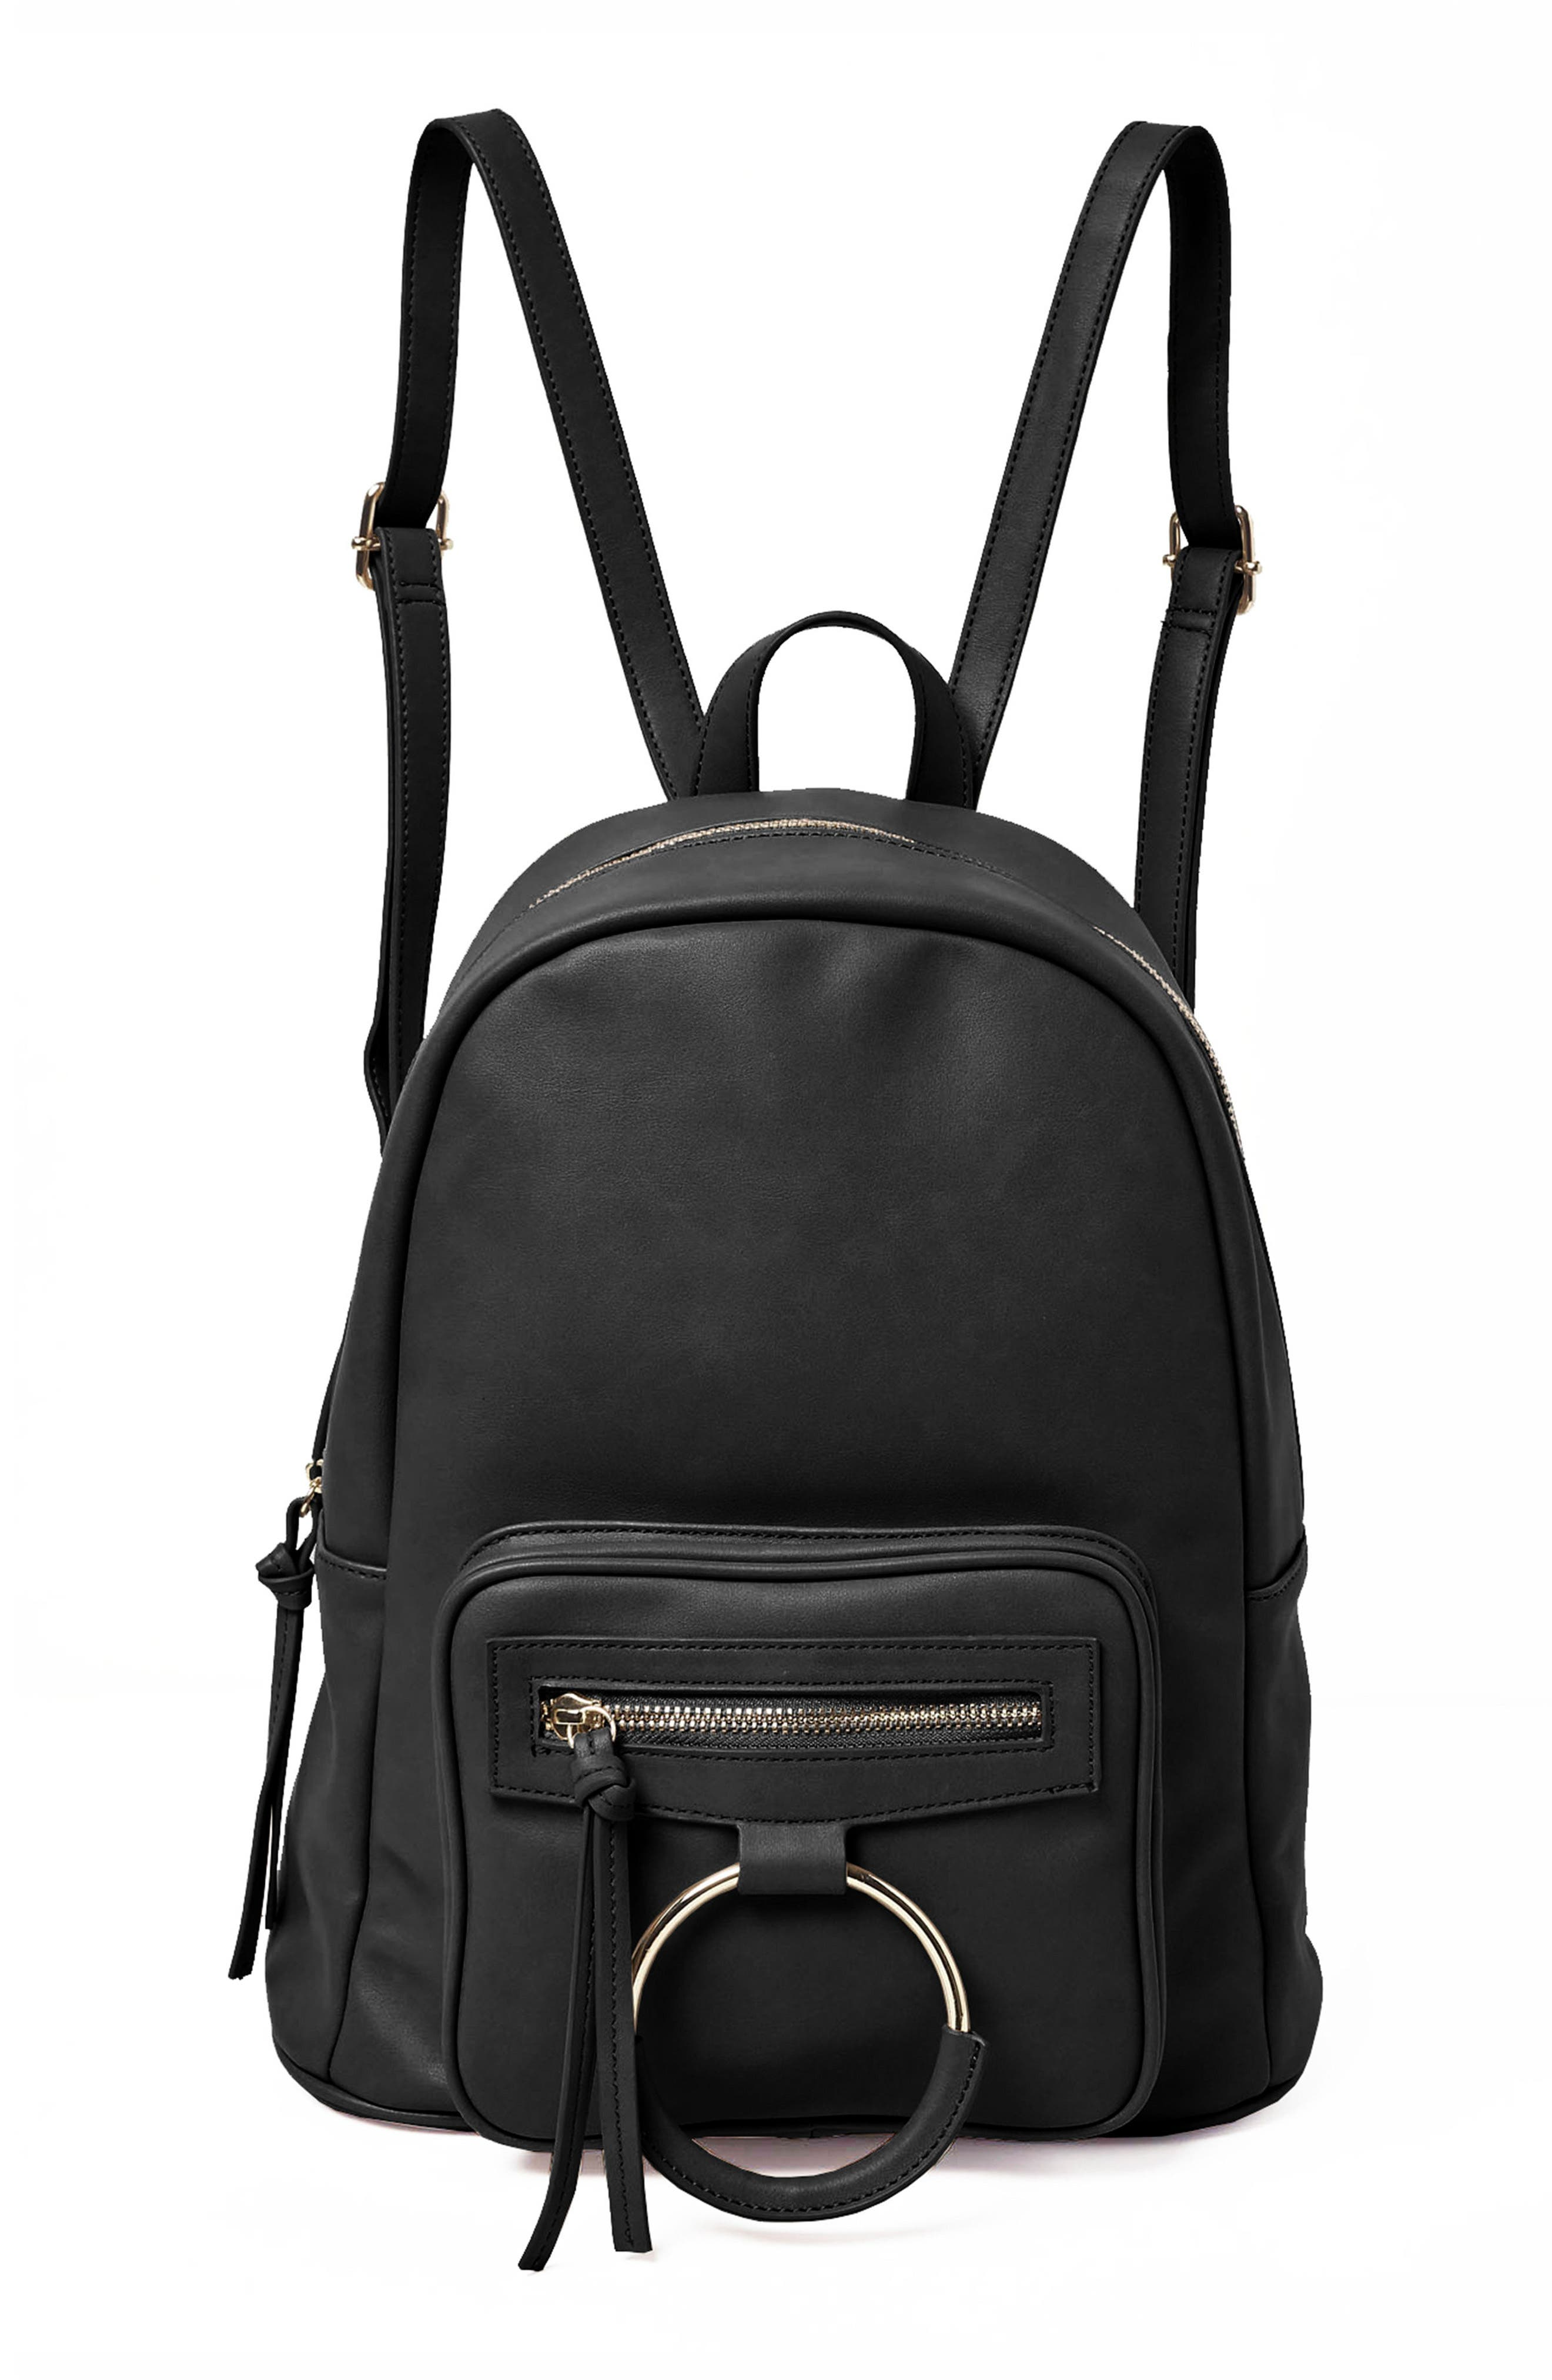 Sublime Vegan Leather Backpack,                             Main thumbnail 1, color,                             001